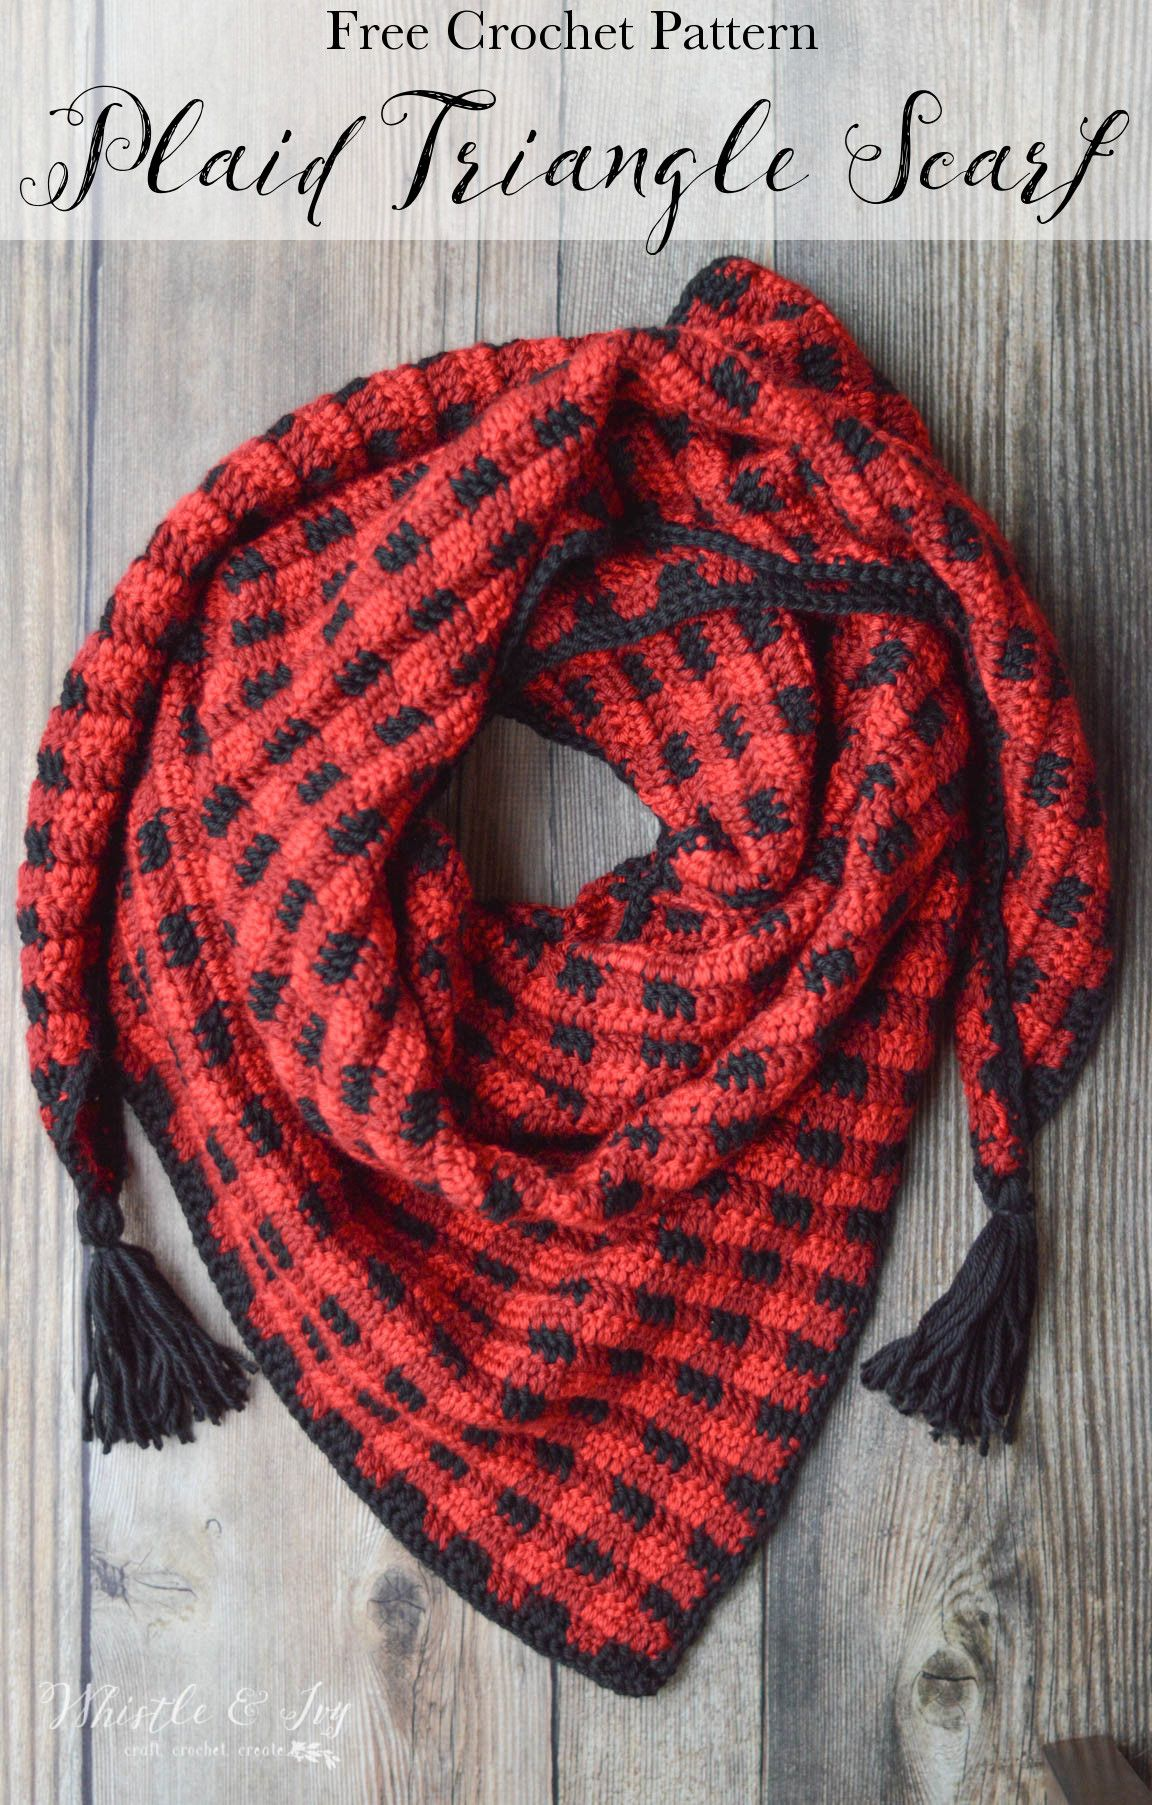 FREE Crochet Pattern  Crochet Plaid Triangle Scarf - This cozy scarf is  perfect for chilly 66f3f01fe3